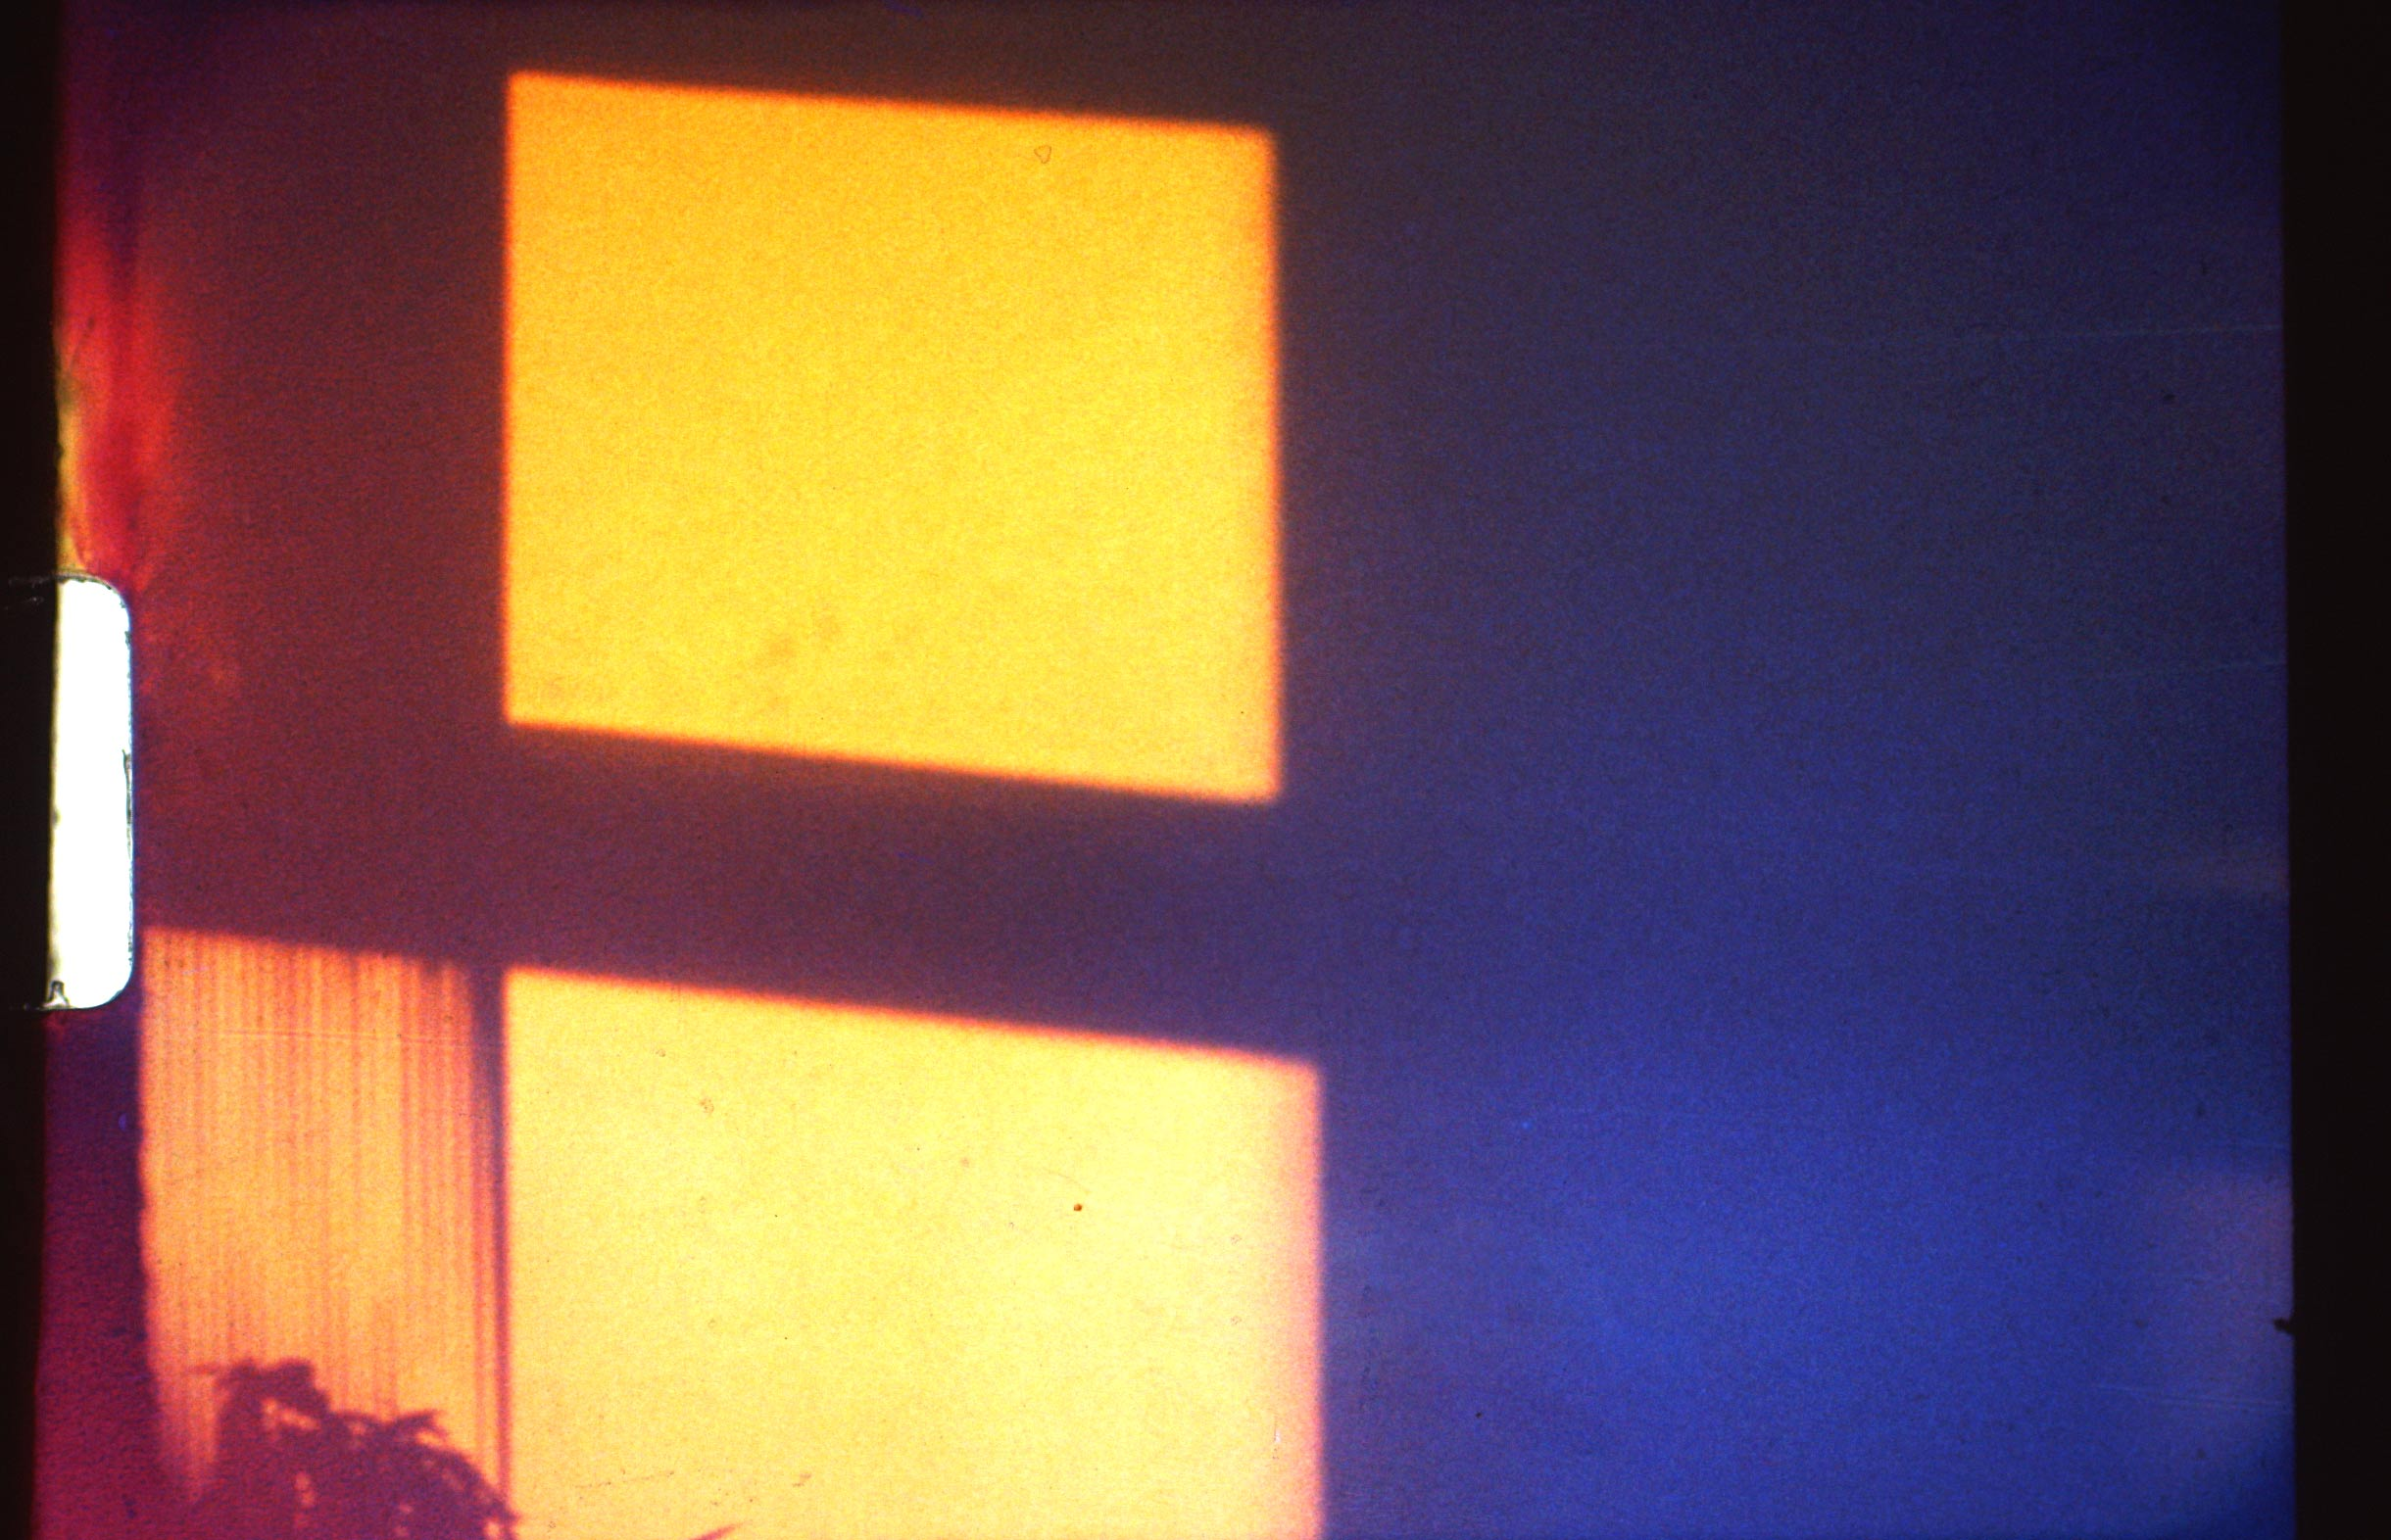 Super 8 film transfer